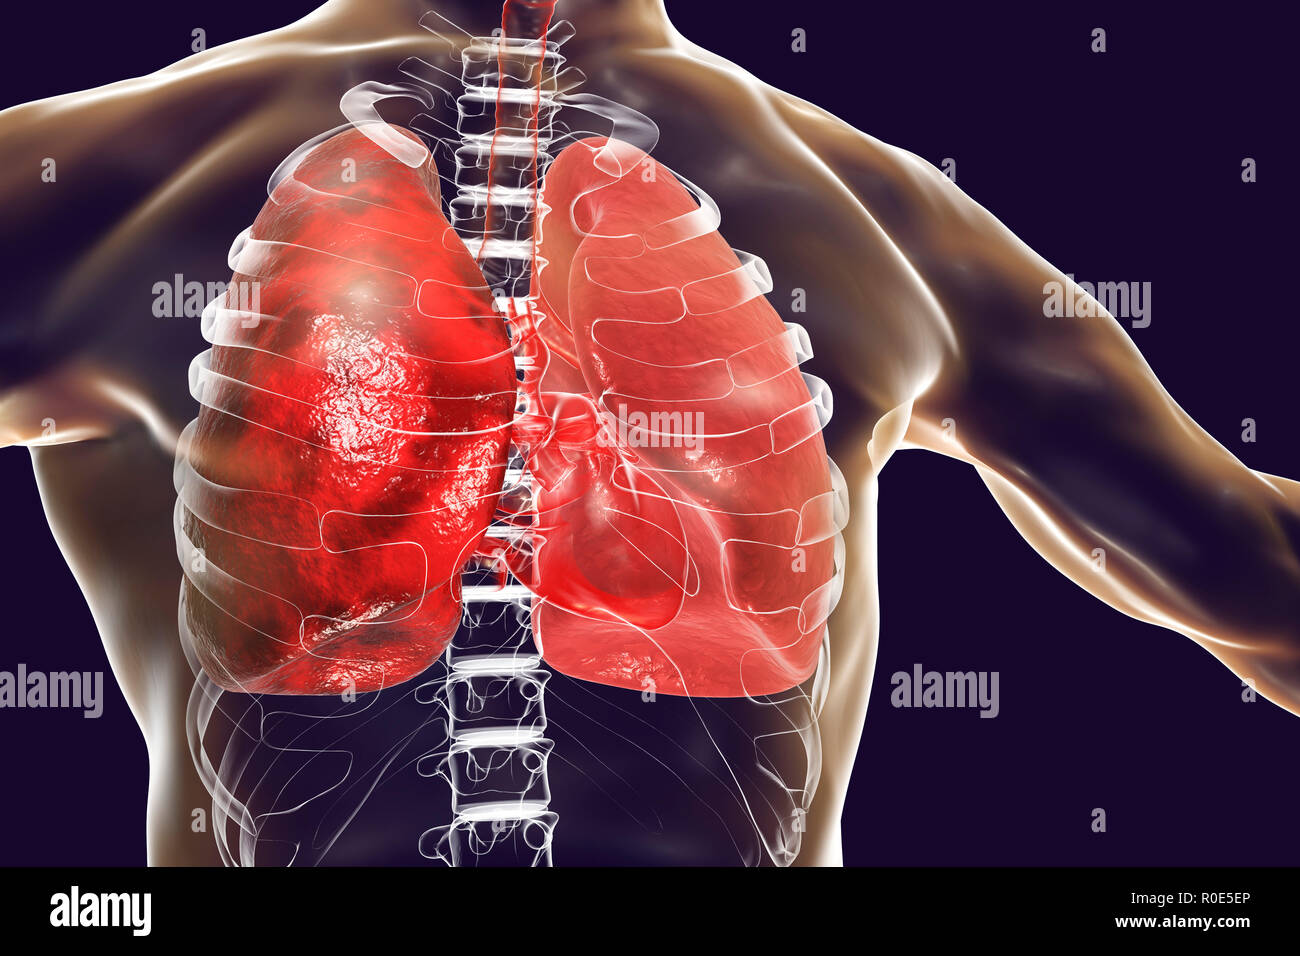 Pneumonia, illustration. Pneumonia is an inflammatory condition of the lung. - Stock Image